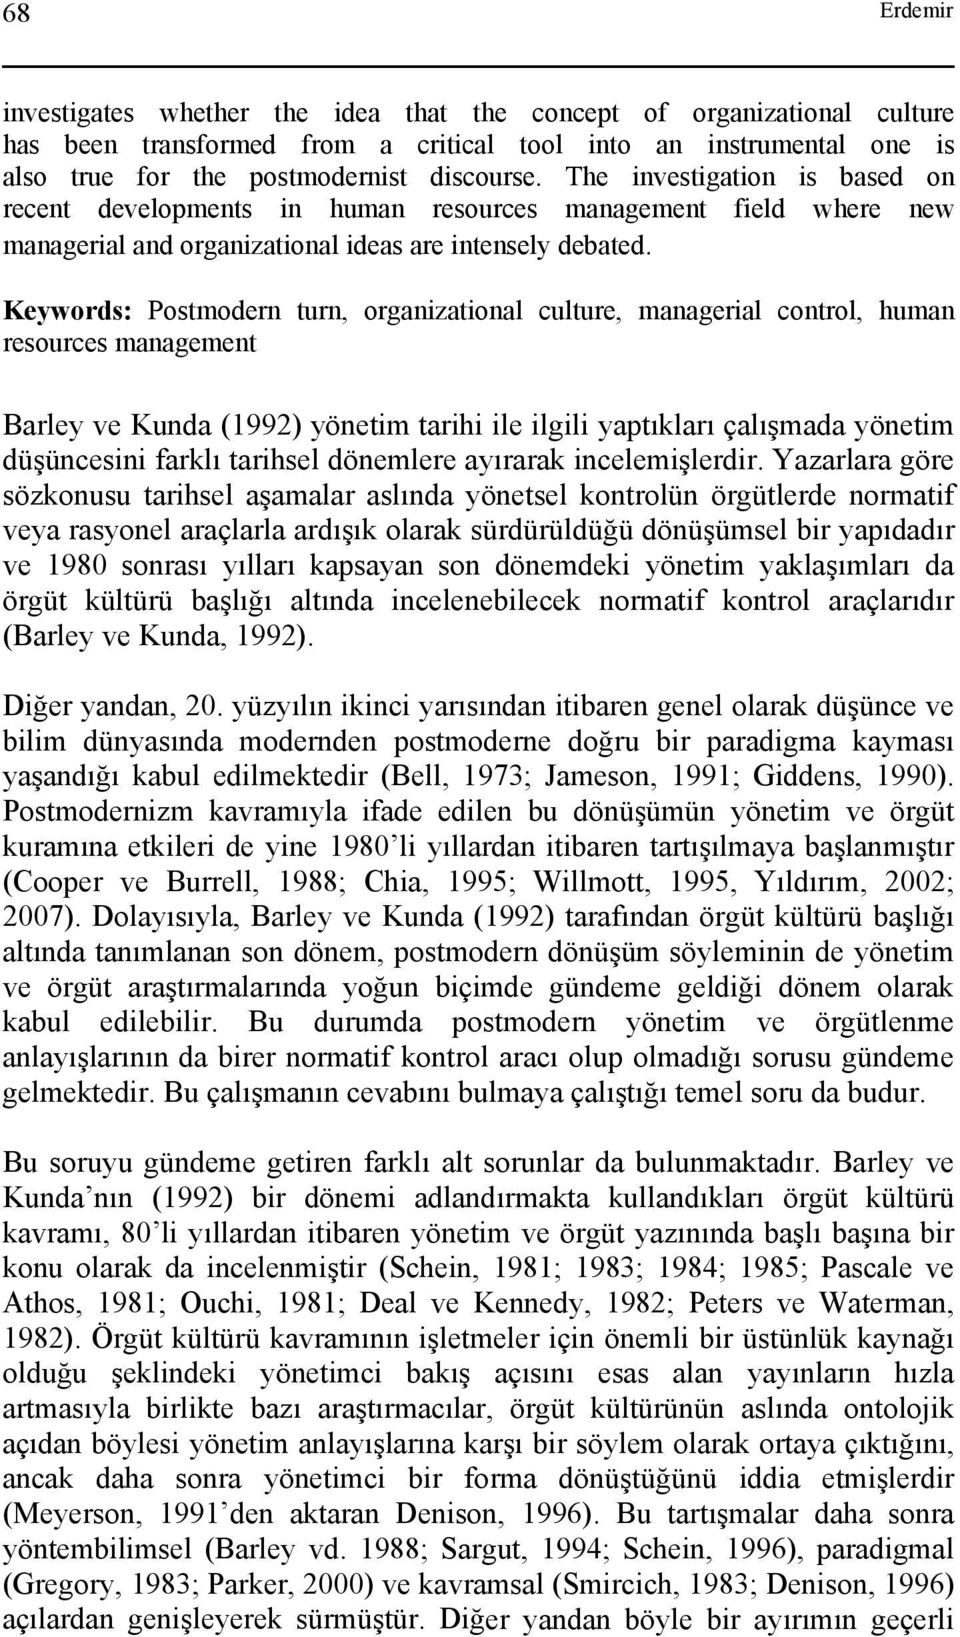 Keywords: Postmodern turn, organizational culture, managerial control, human resources management Barley ve Kunda (1992) yönetim tarihi ile ilgili yaptıkları çalışmada yönetim düşüncesini farklı